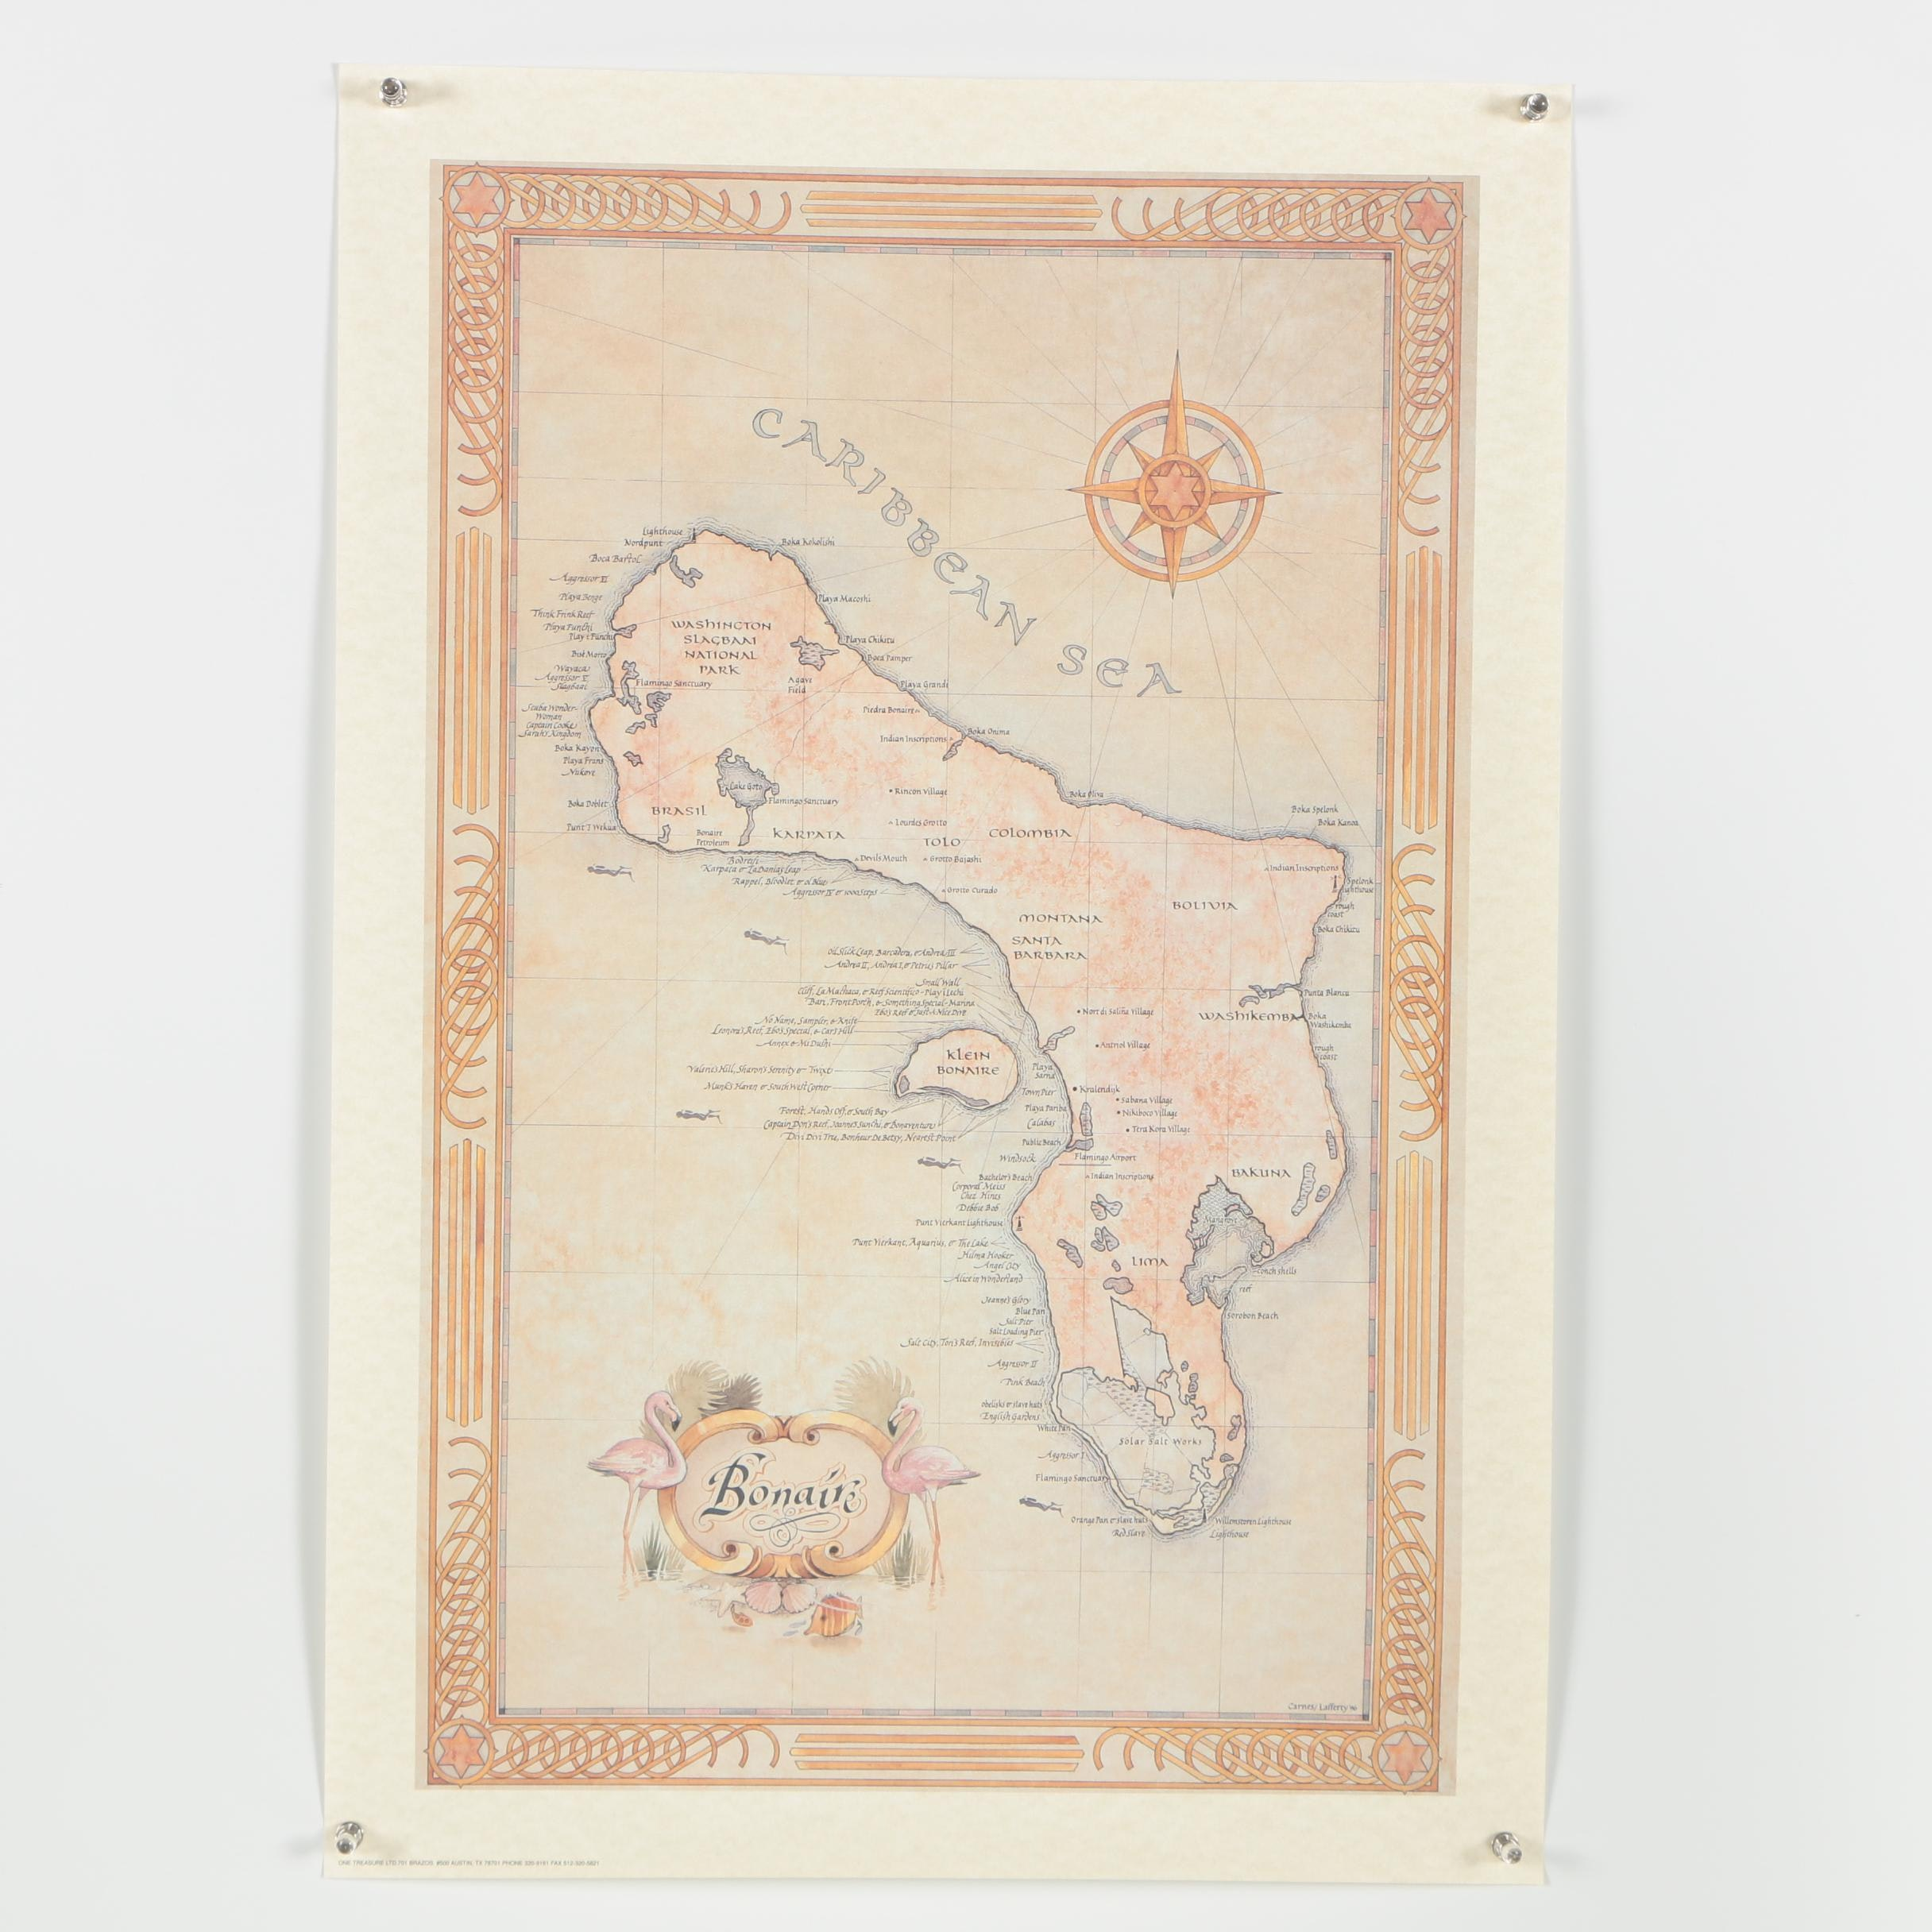 Offset Lithograph Map of Bonaire Island